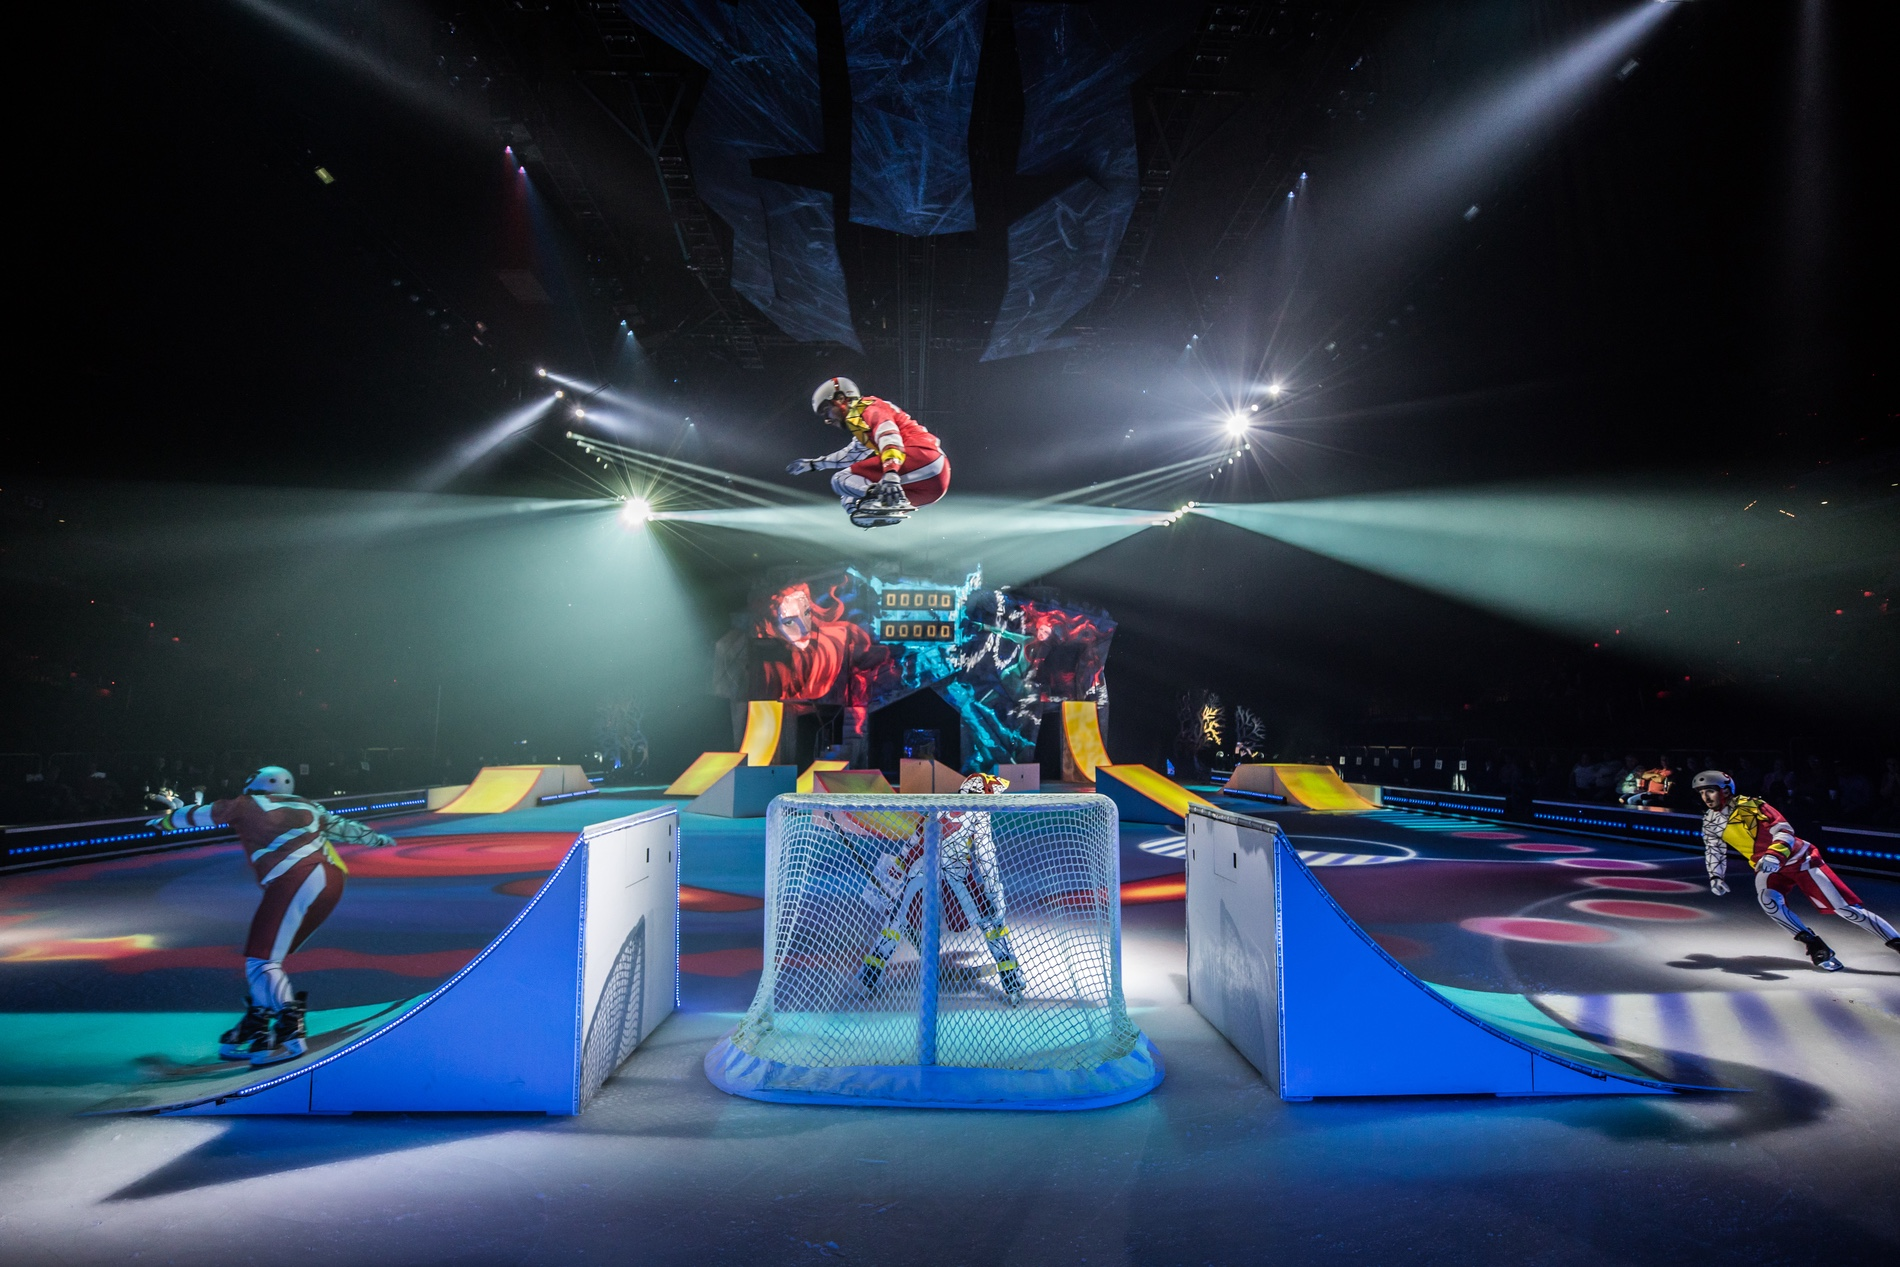 Cirque du Soleil Crystal Ice Skating Performance 2017